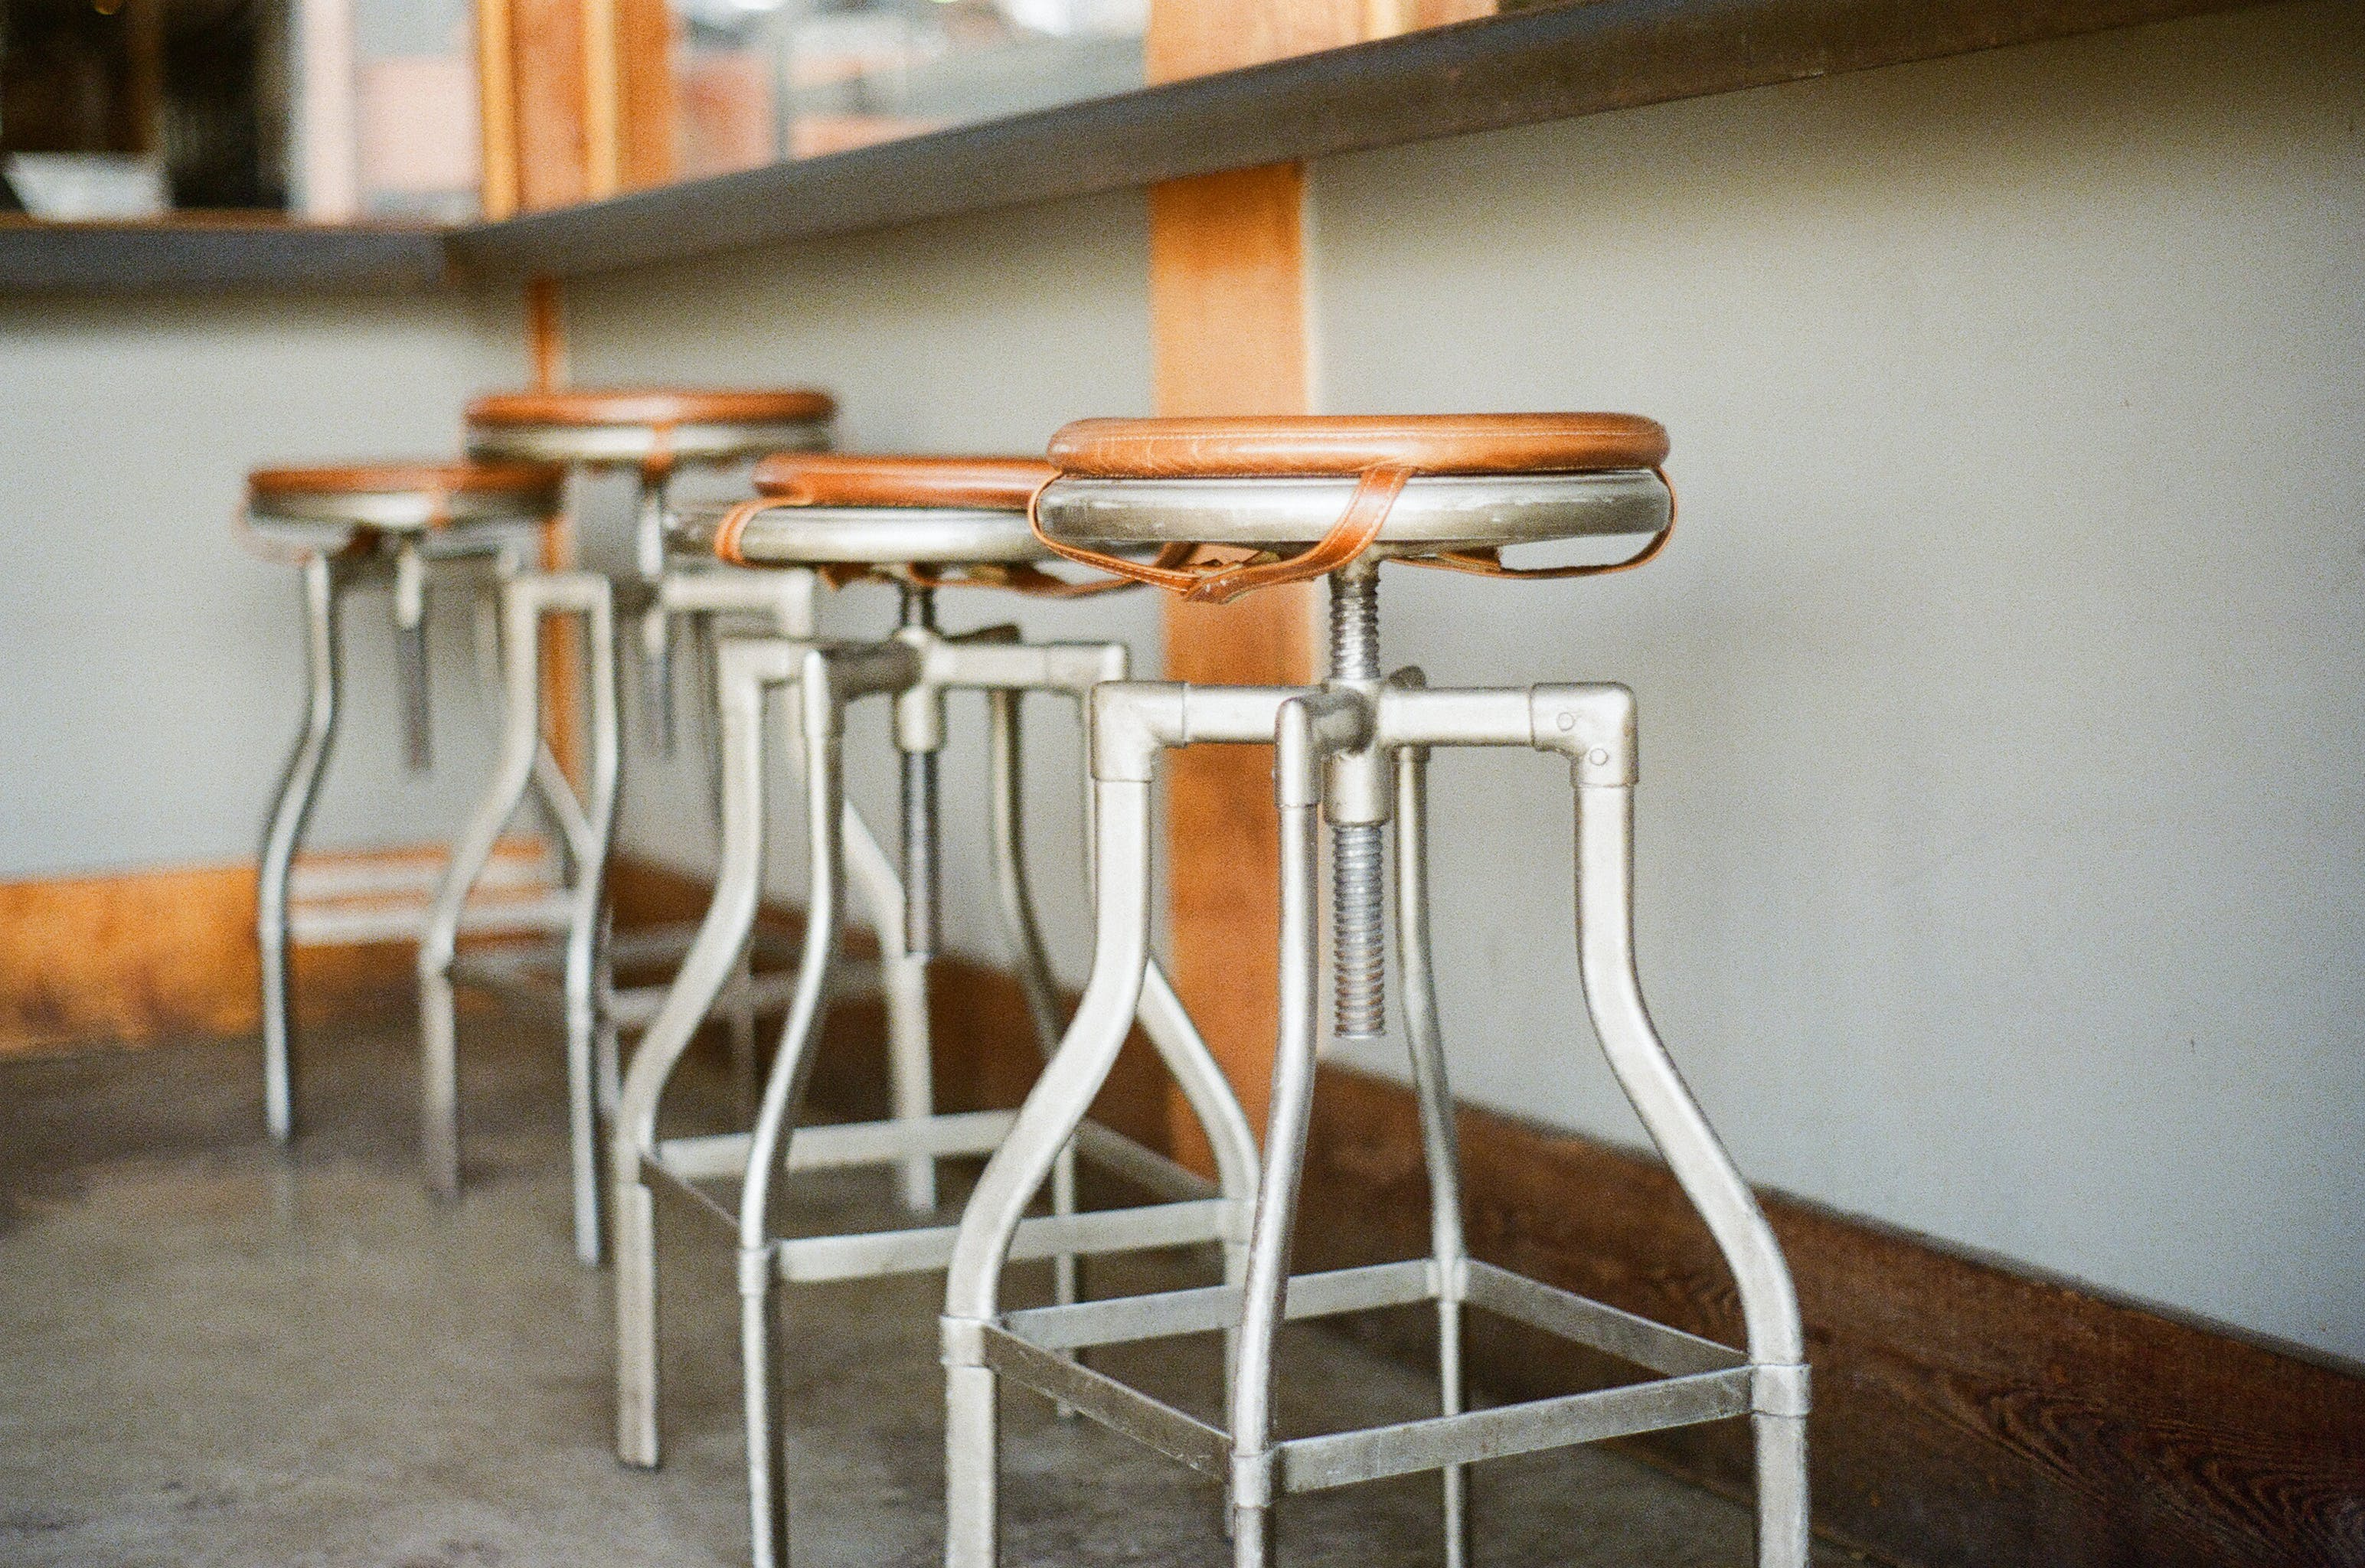 Shallow Focus Photography of Bar Stools